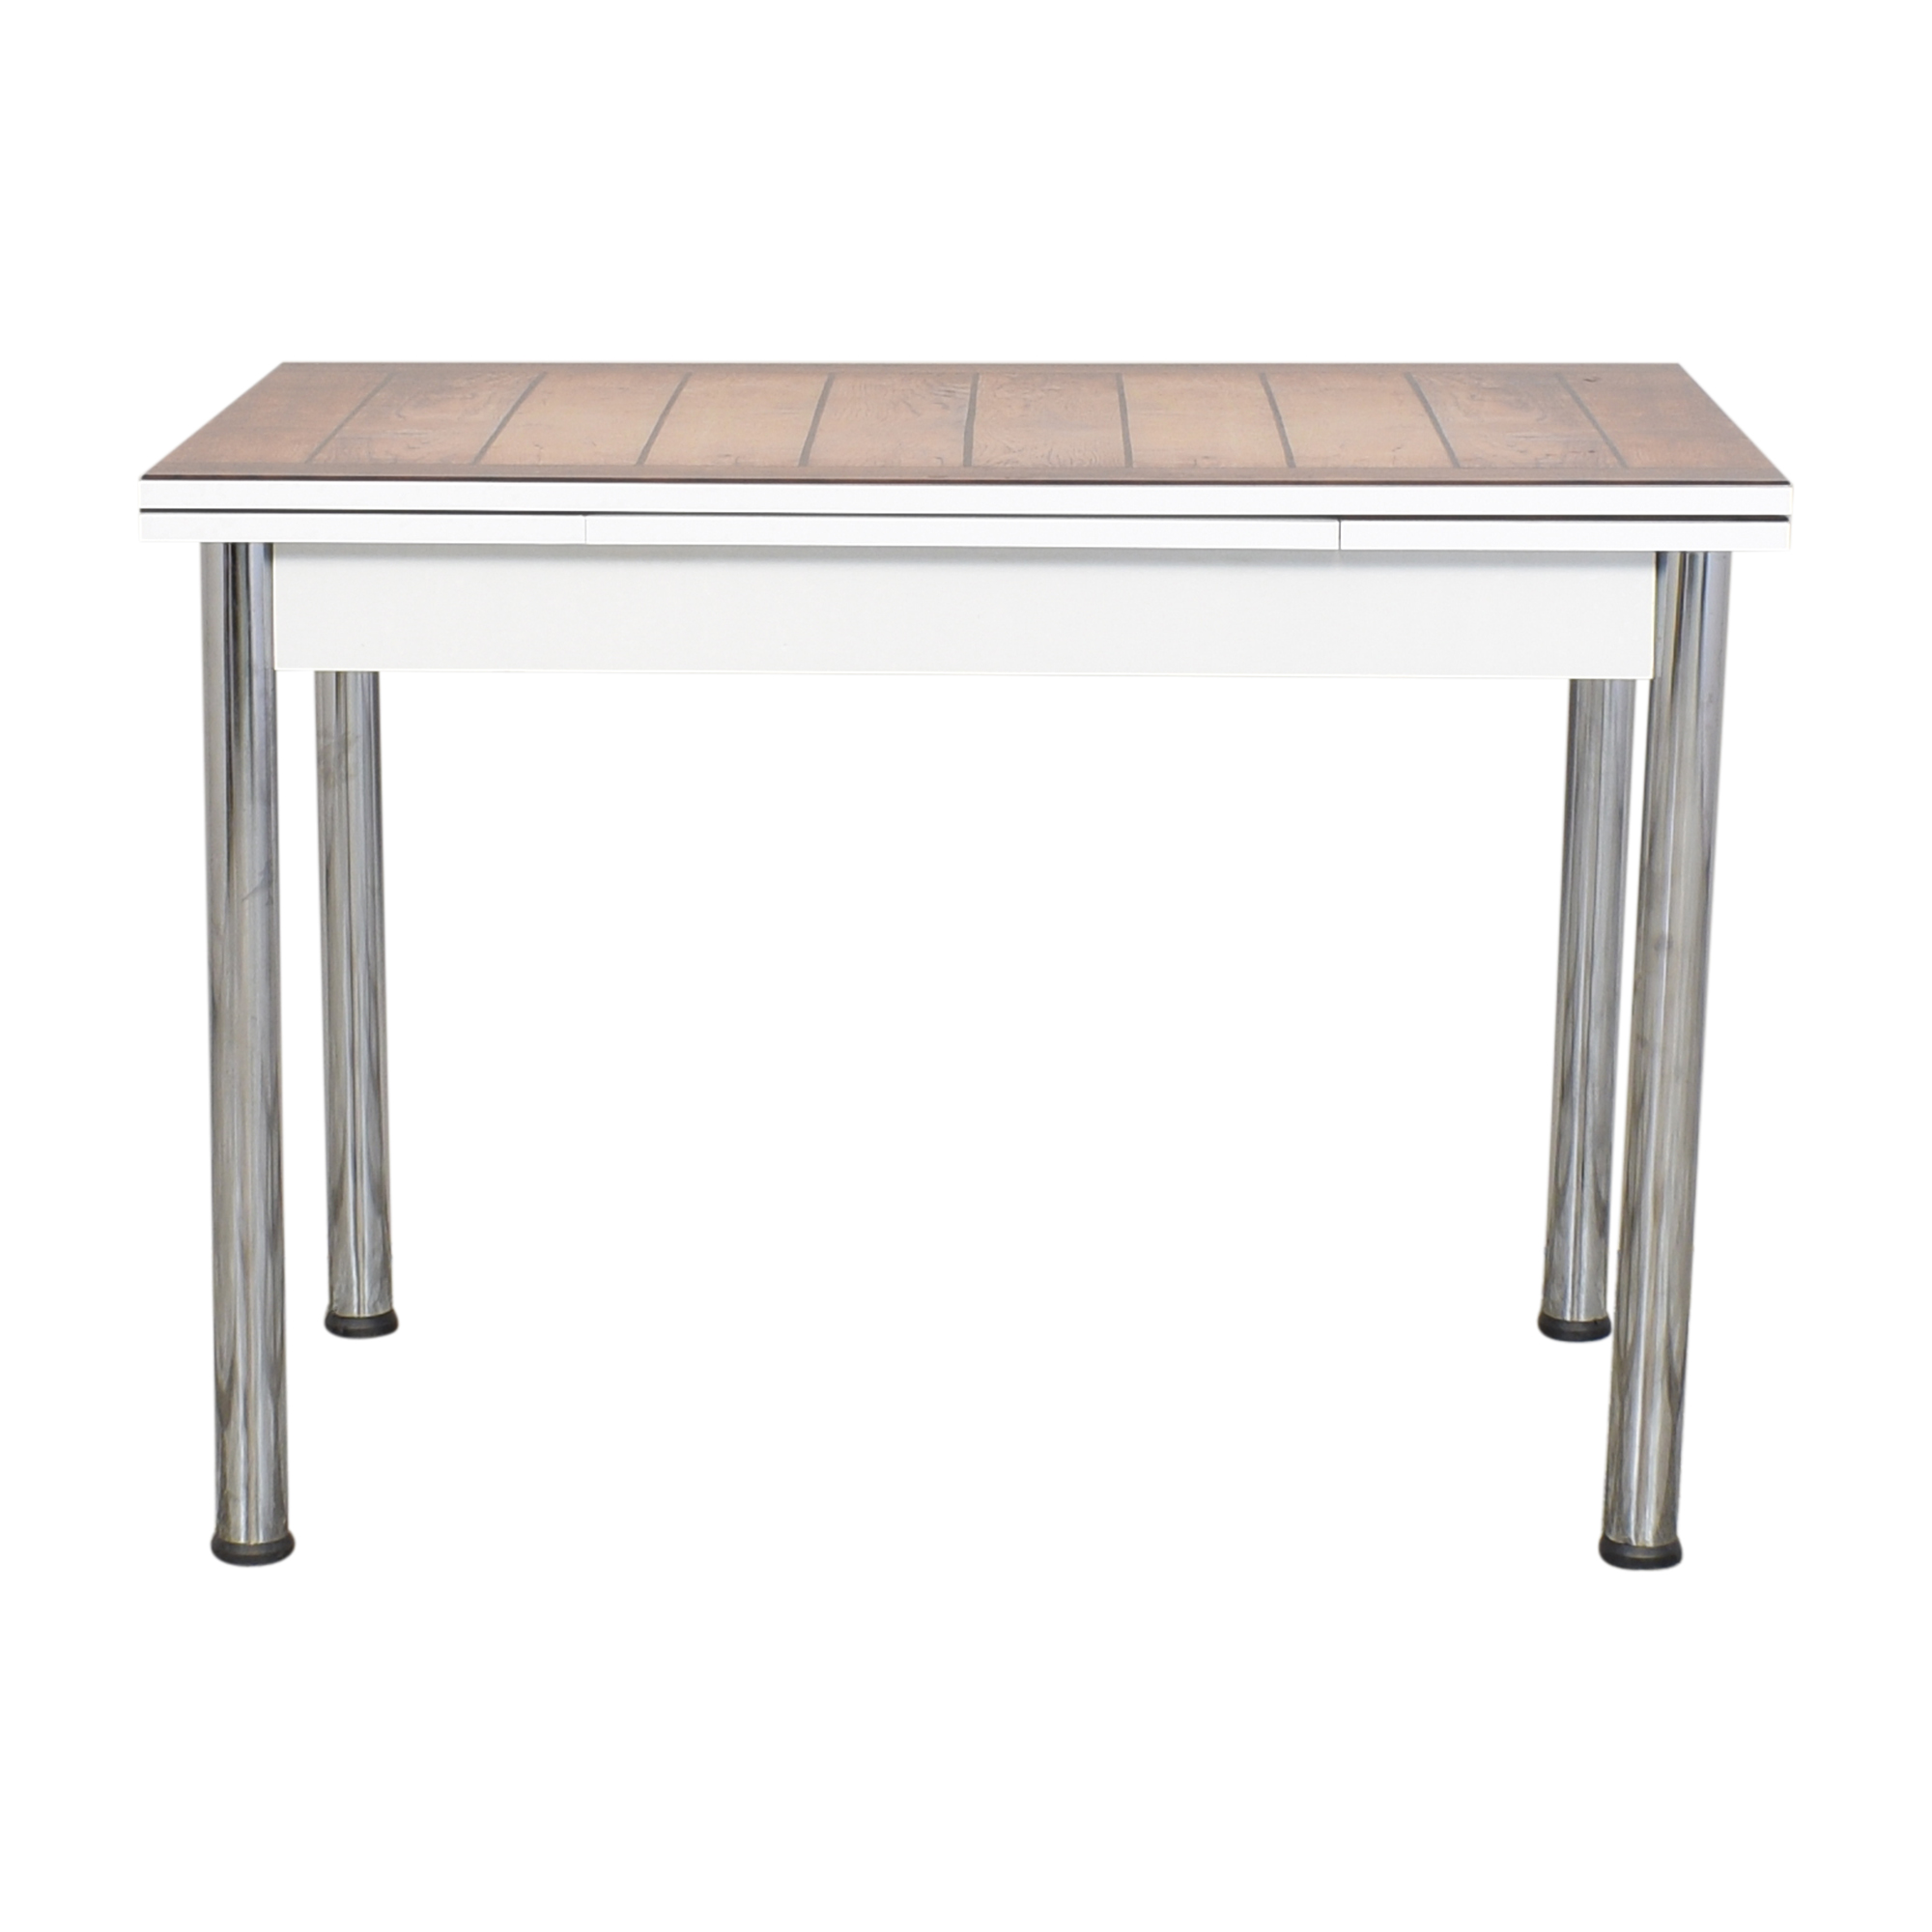 Extending Dining Table / Tables